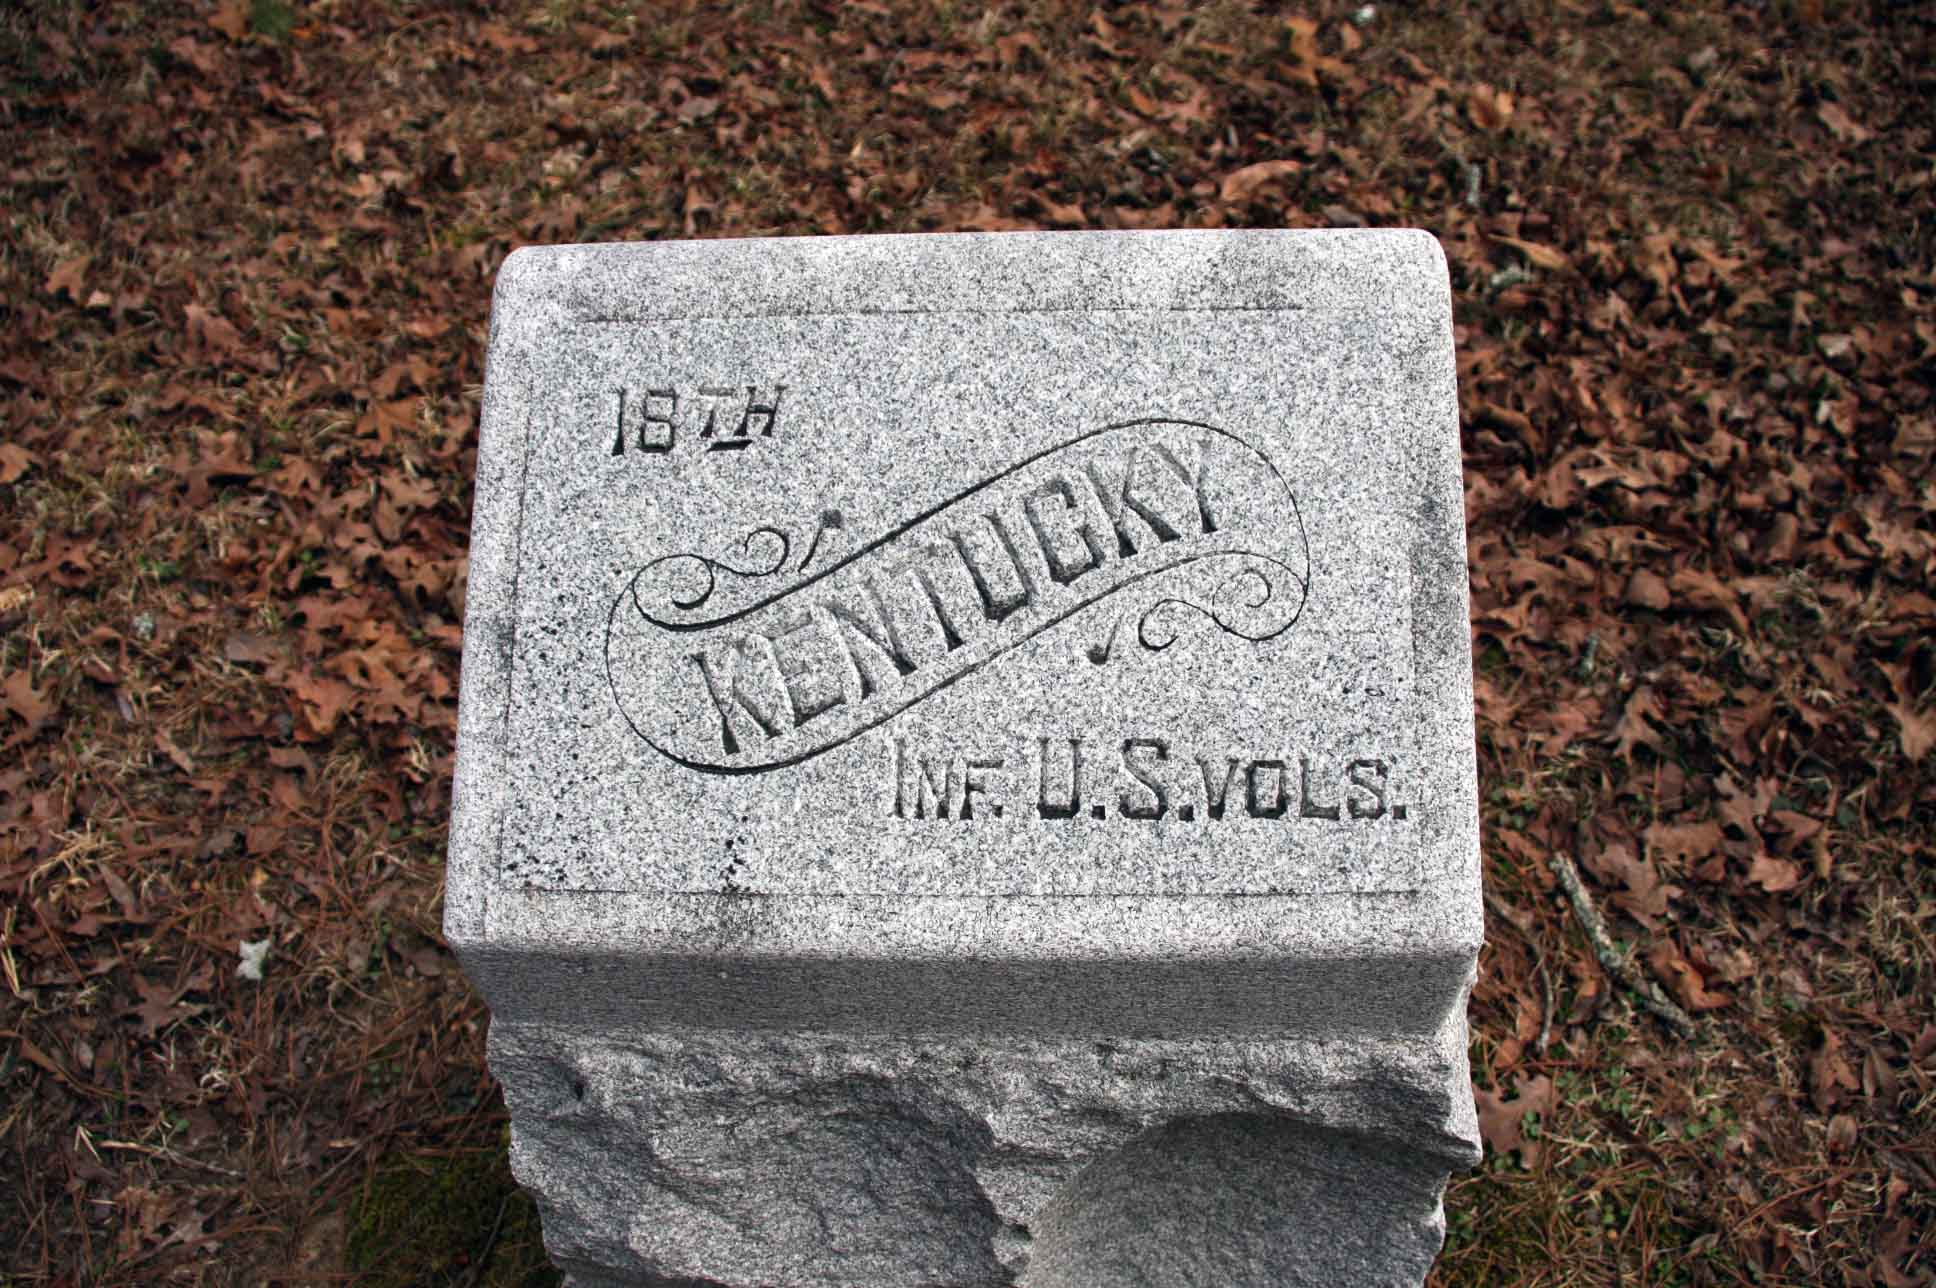 18th Kentucky (USA) Marker, click photo to enlarge.